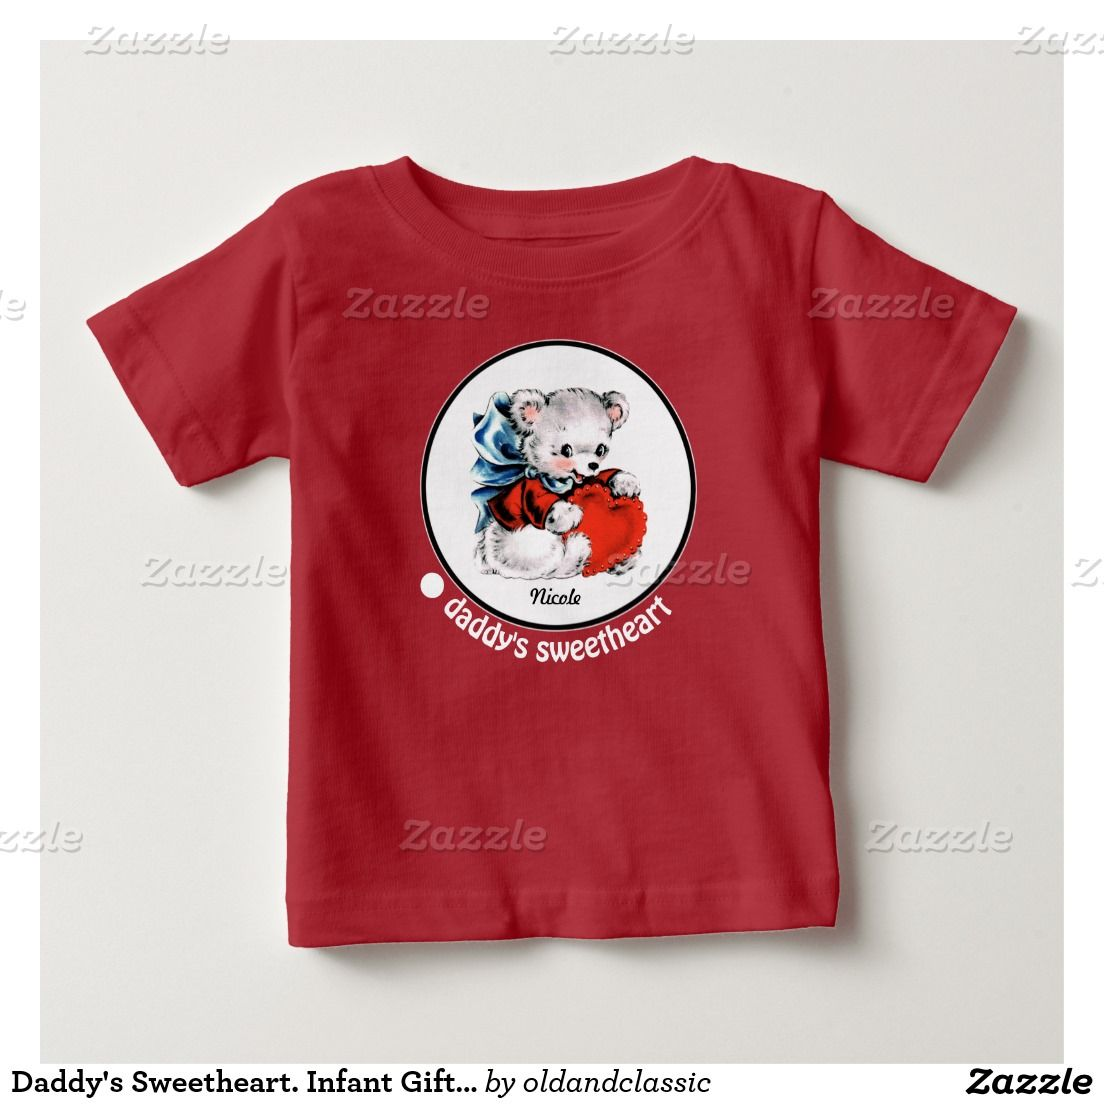 Daddy's Sweetheart. Vintage Teddy Bear with heart design Infant Gift T-Shirts and Sweatshirts with personalized kid's name. Matching cards, postage stamps and other products available in the Holidays / Valentine's Day Category of the oldandclassic store at zazzle.com